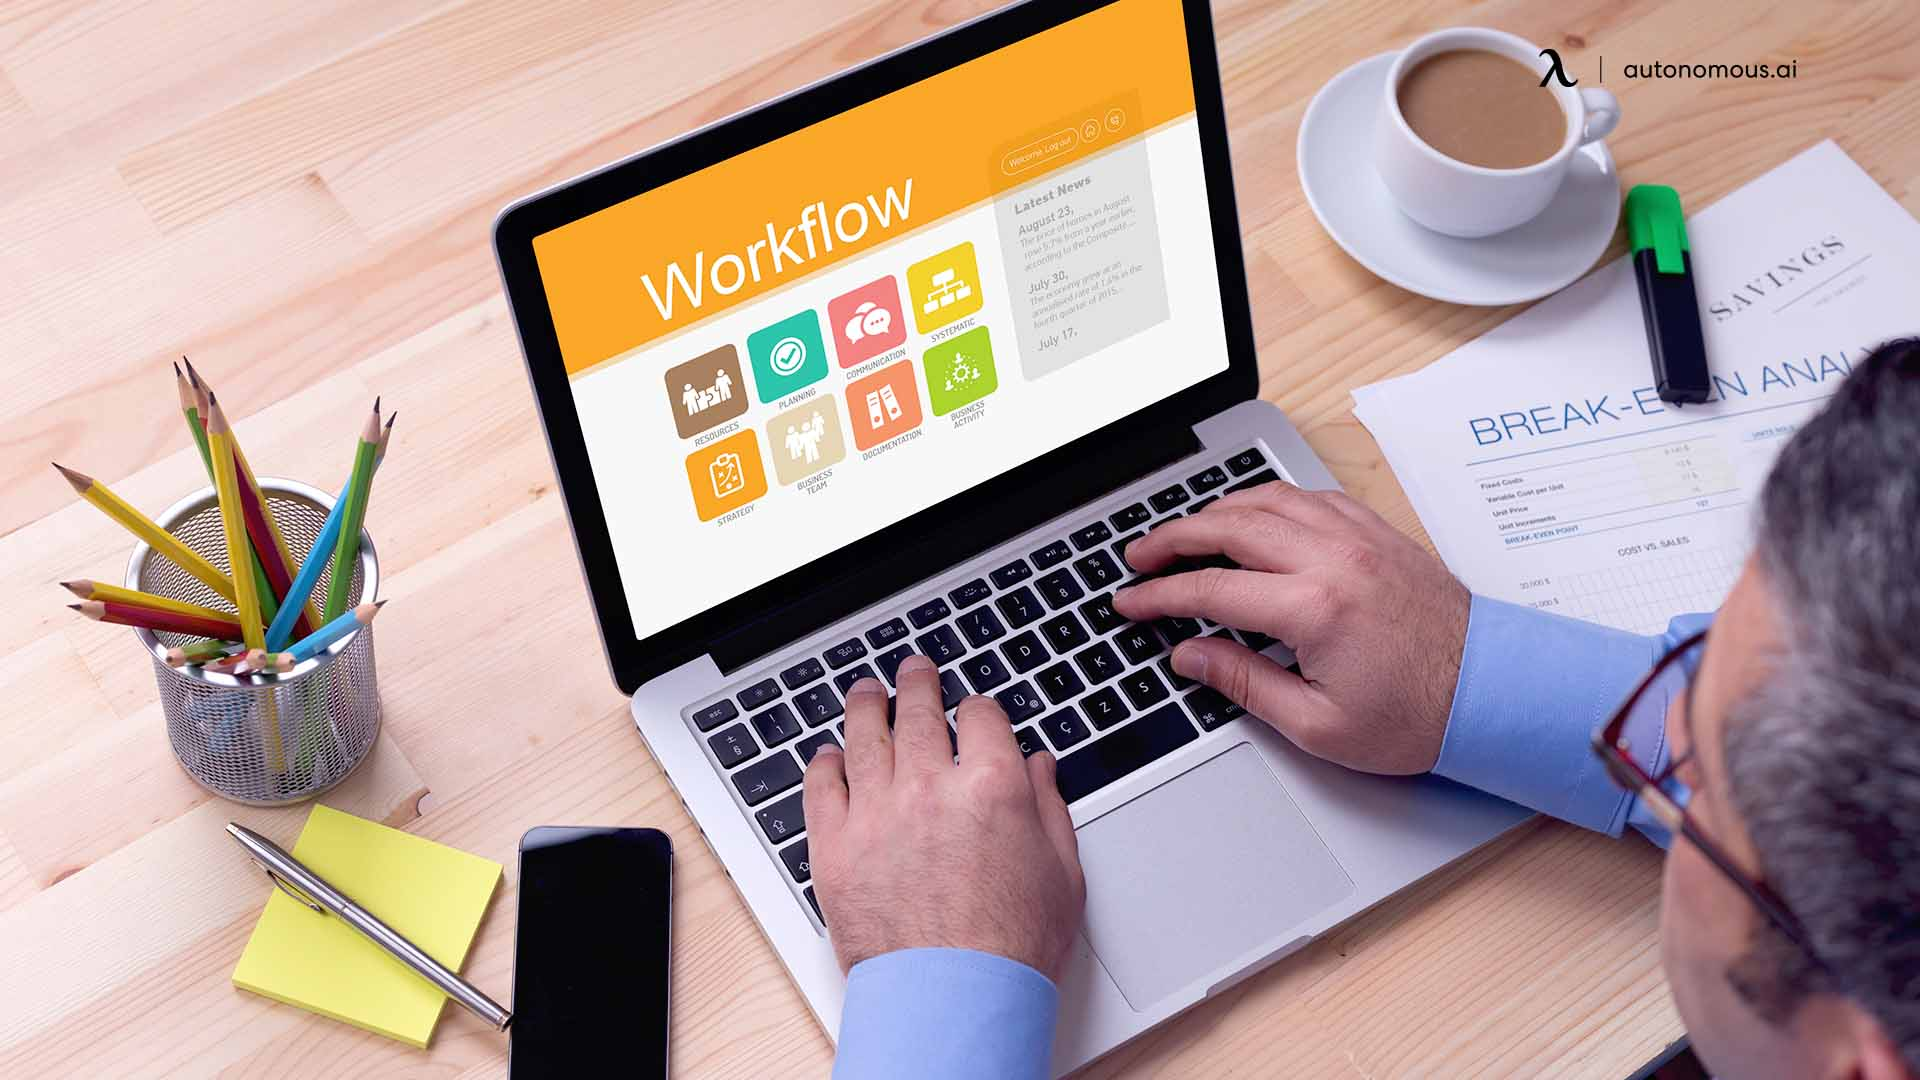 What is the digital workplace workflow?